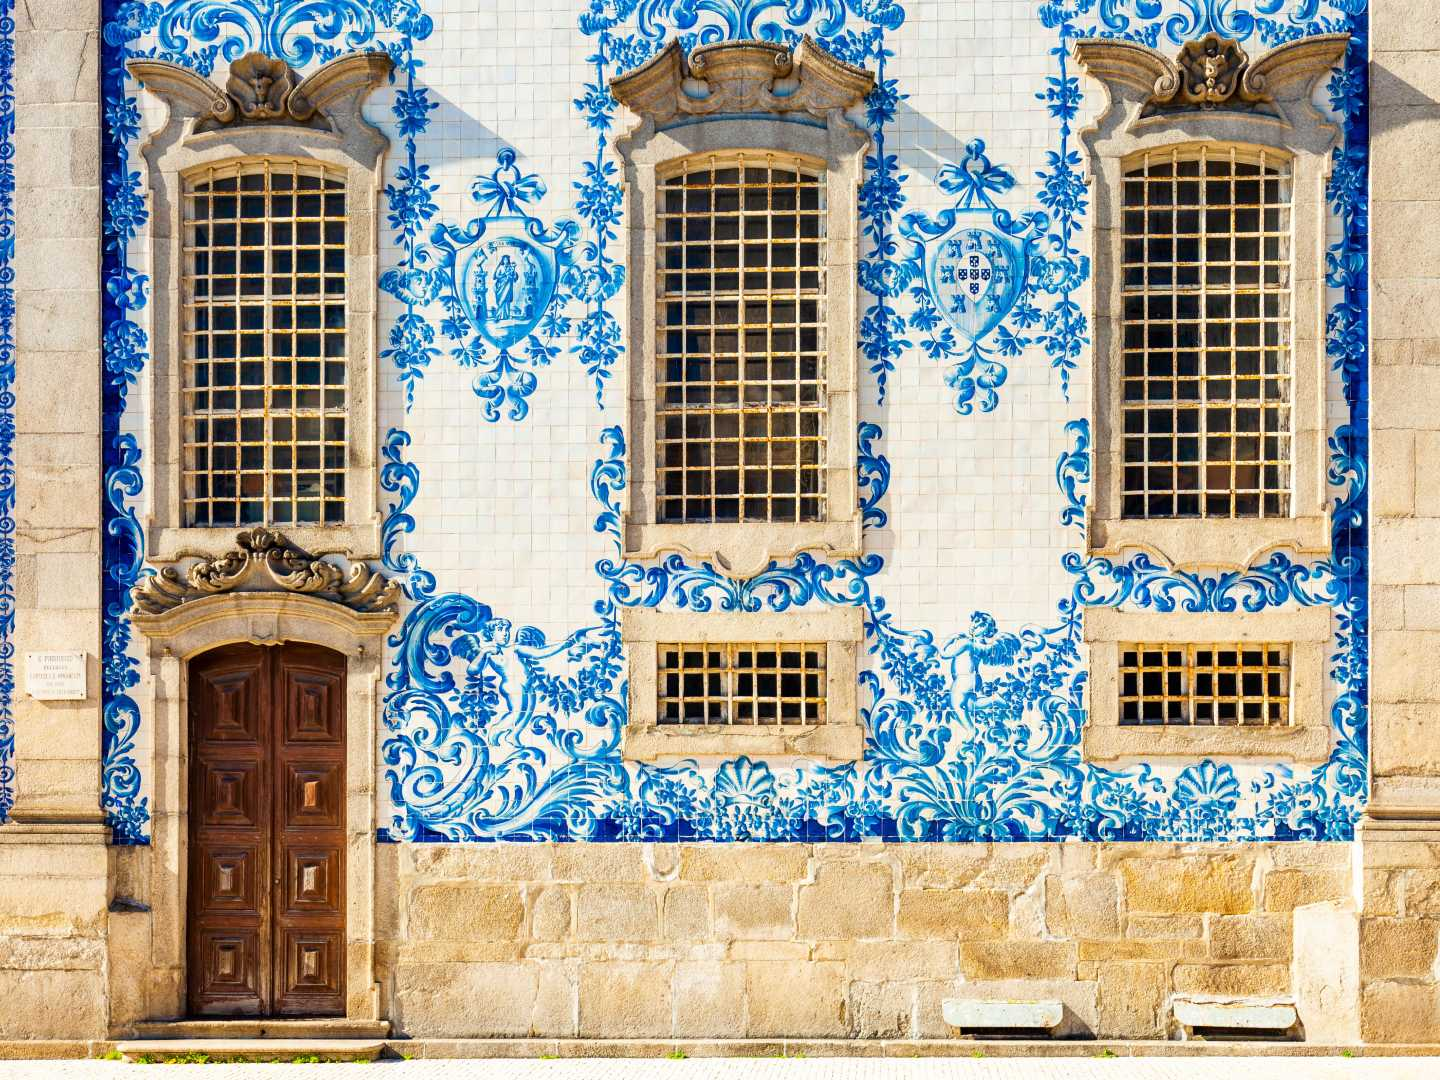 Europe, Portugal, tiled walls of a city